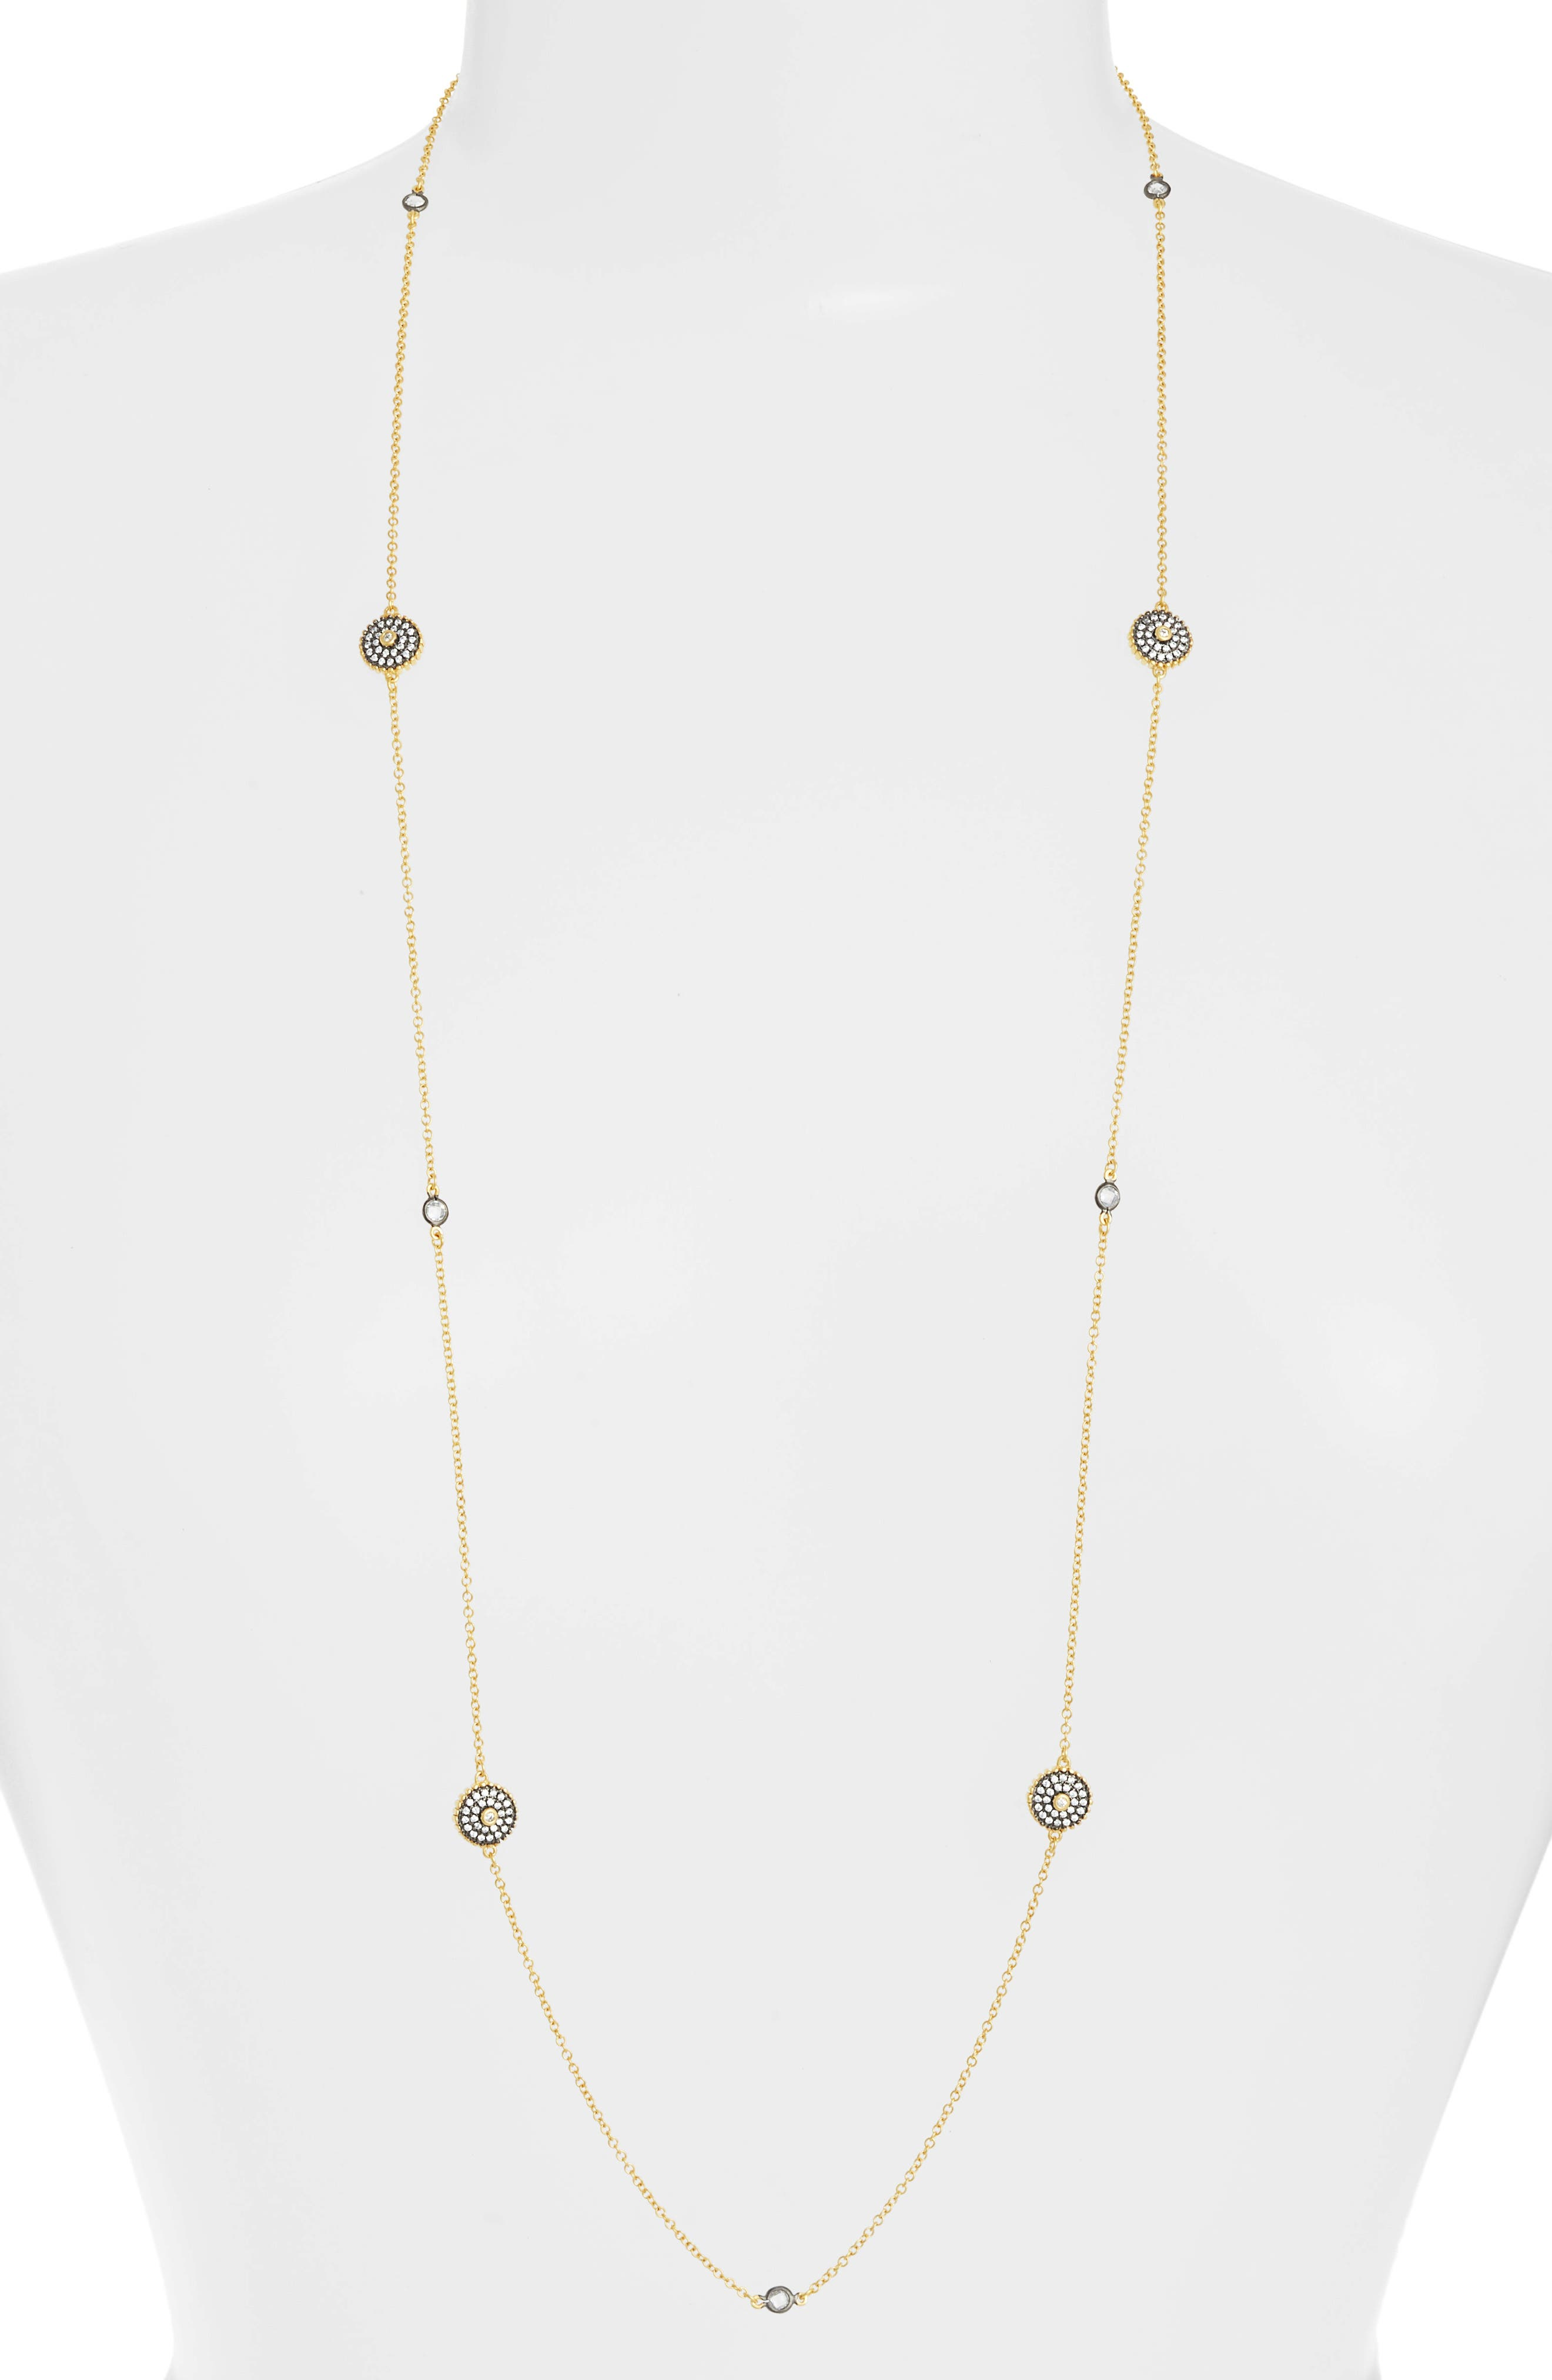 Double-Sided Pavé Disc Station Necklace,                             Main thumbnail 1, color,                             BLACK/ WHITE/ GOLD